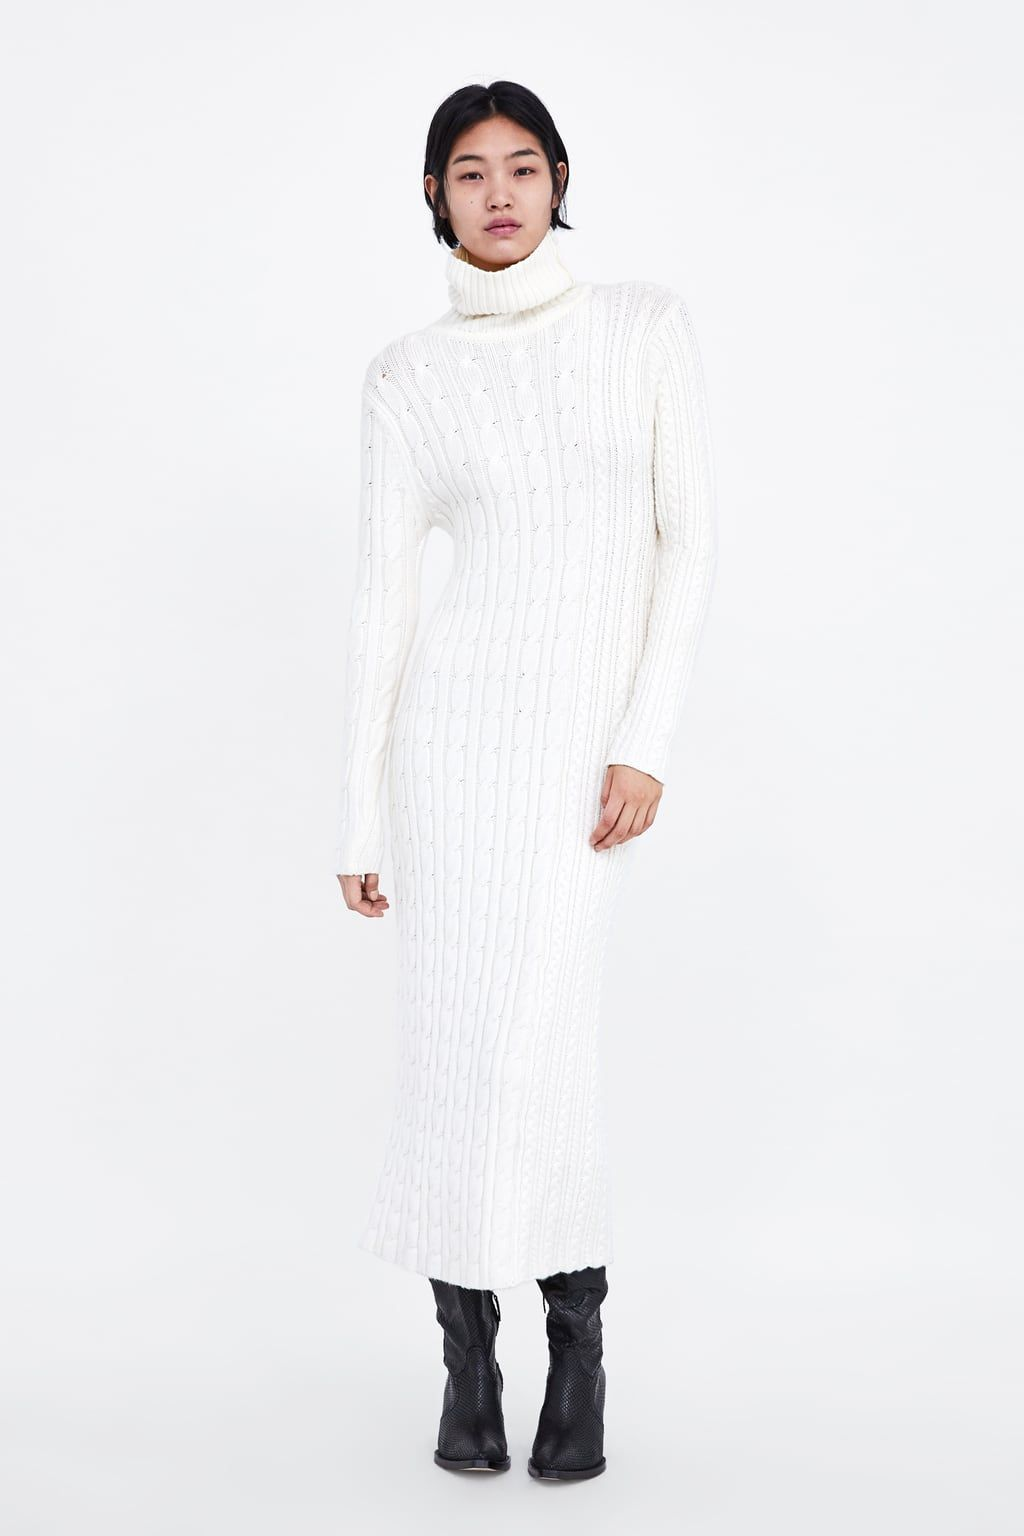 Details about  /Zara Women Knit Dress With Opening Sleeves Black